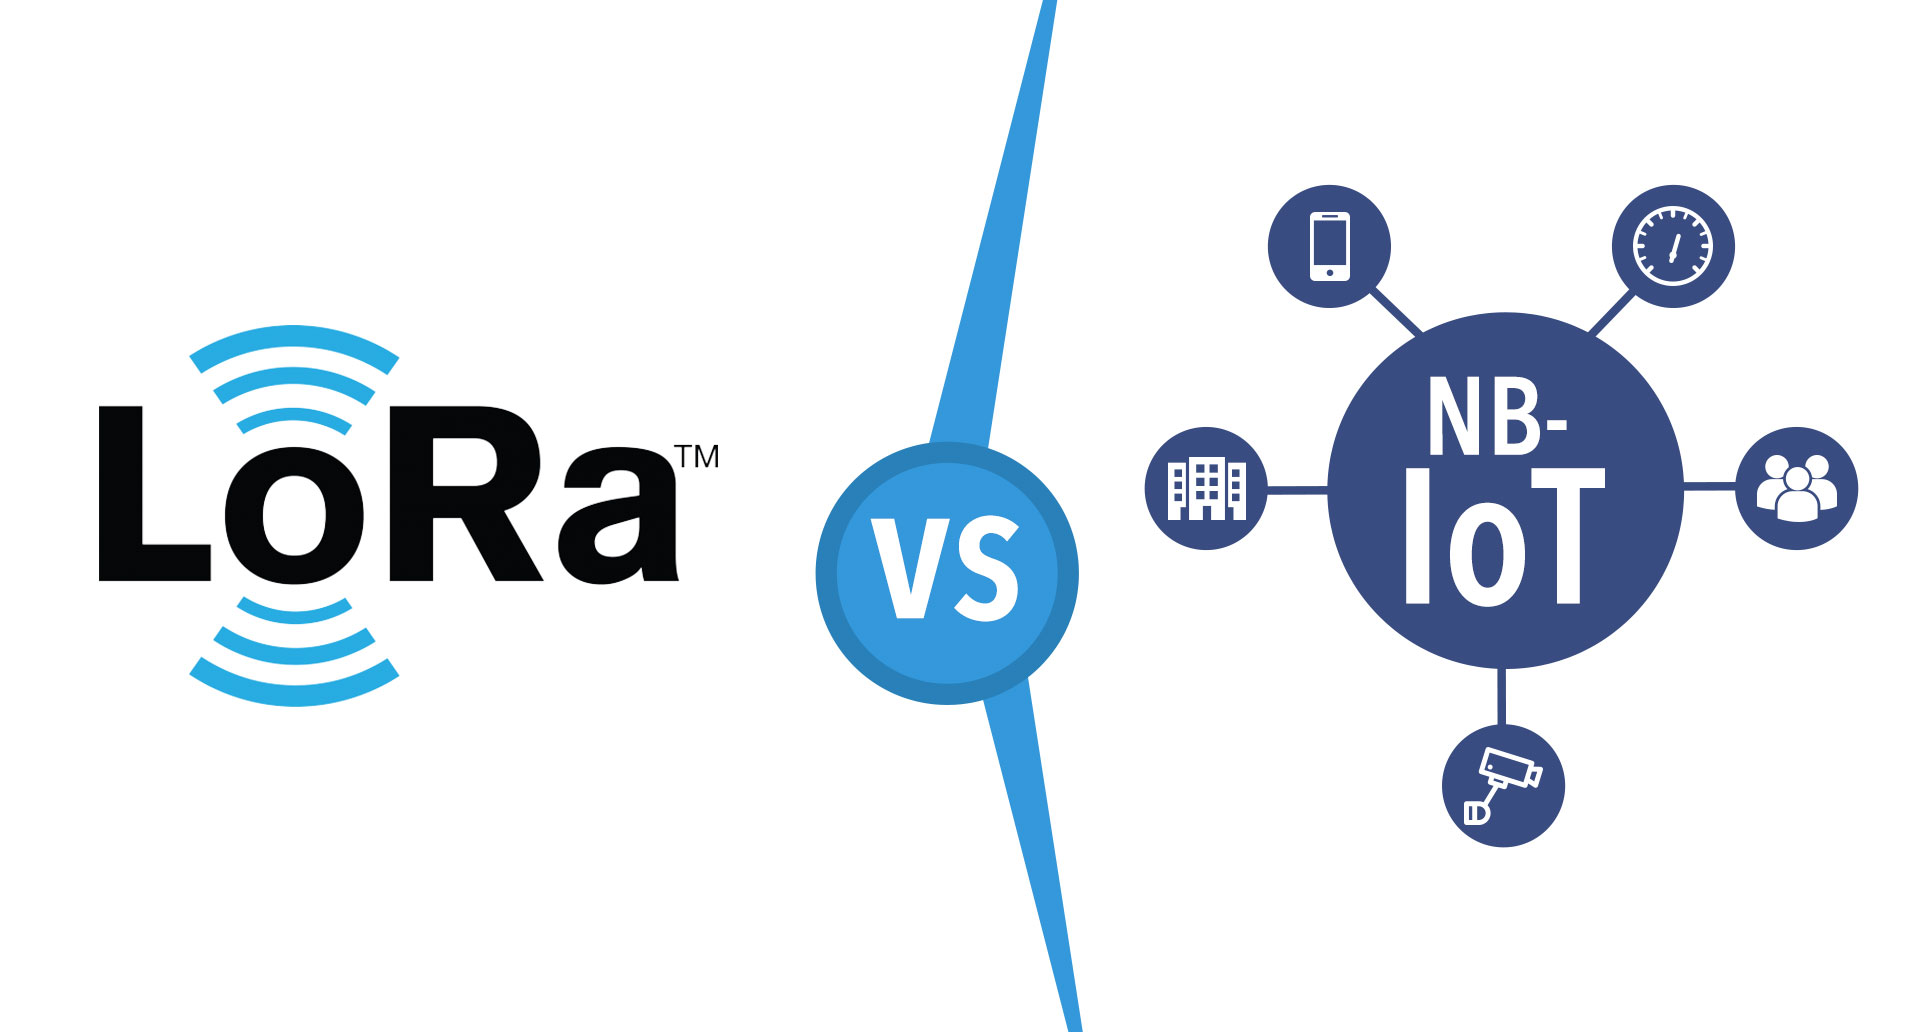 Comparion of IoT standards LoRa and MB-IOT